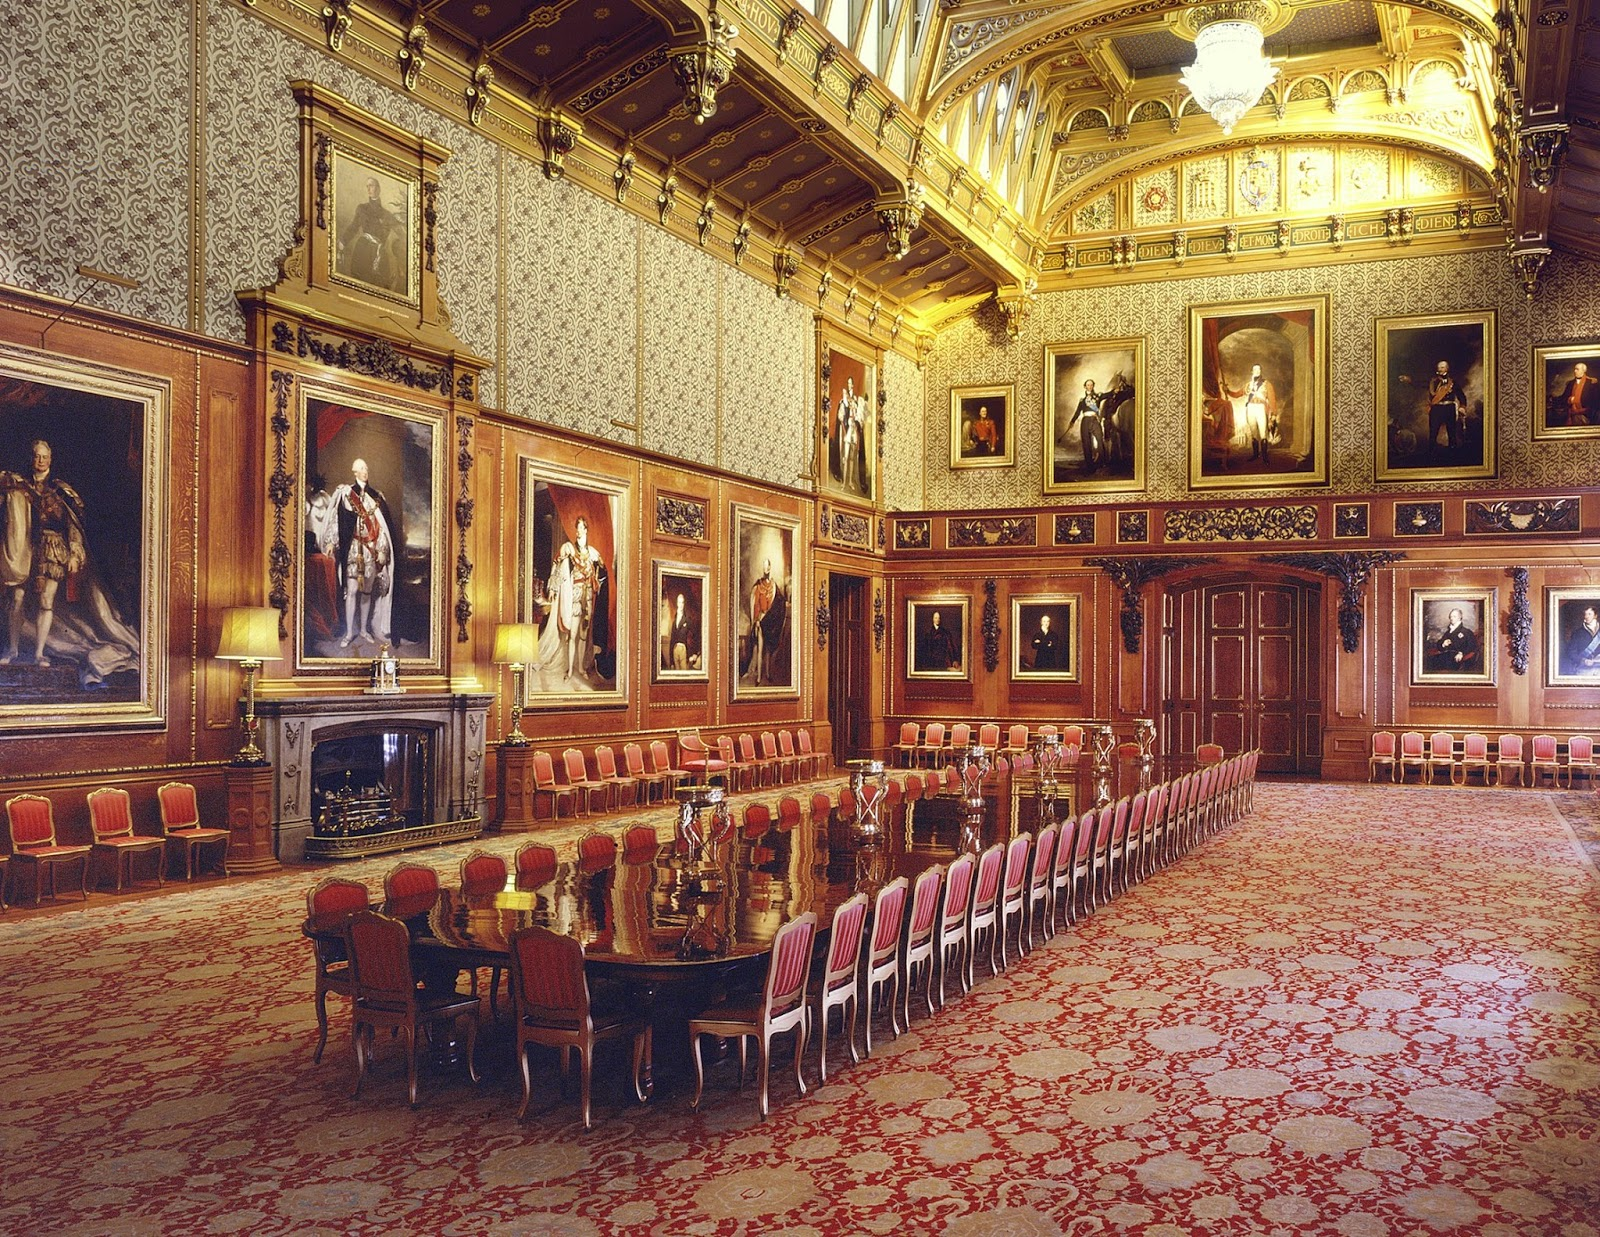 The Waterloo Chamber, Windsor Castle  Photo: Mark Fiennes  Royal Collection Trust © Her Majesty Queen Elizabeth II 2014